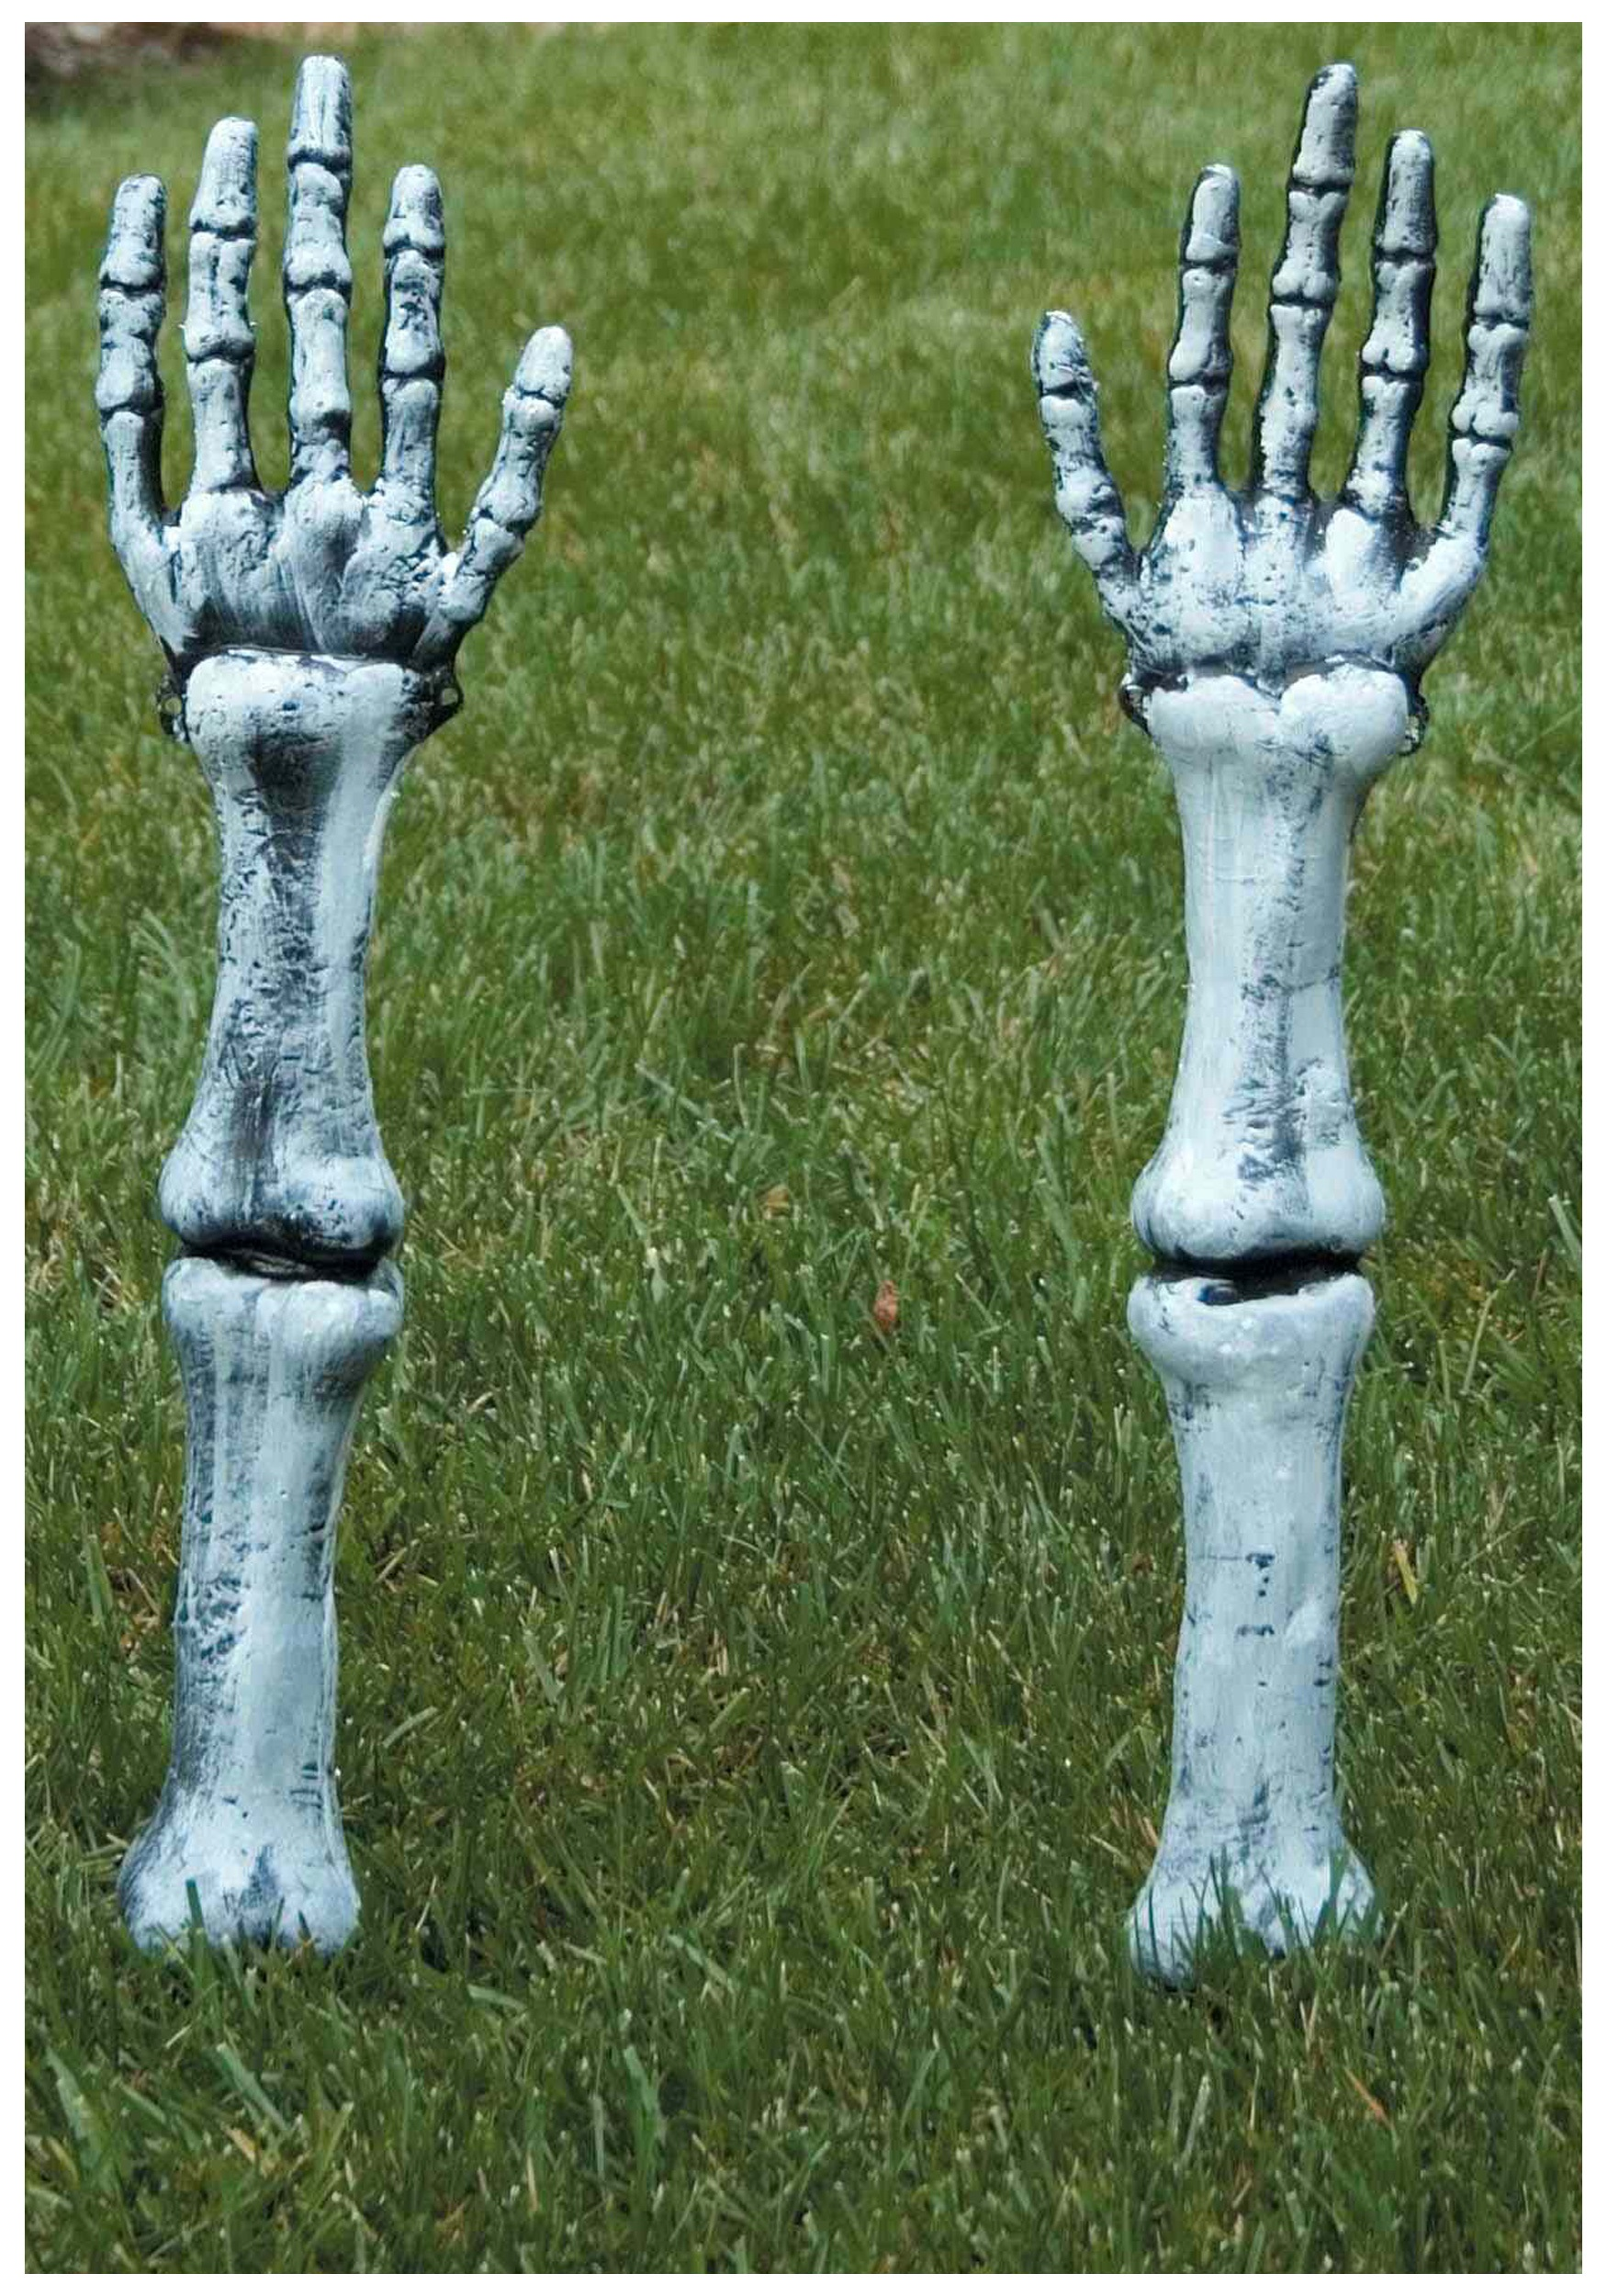 Scary Halloween Lawn Decorations - Skeleton arm lawn stakes